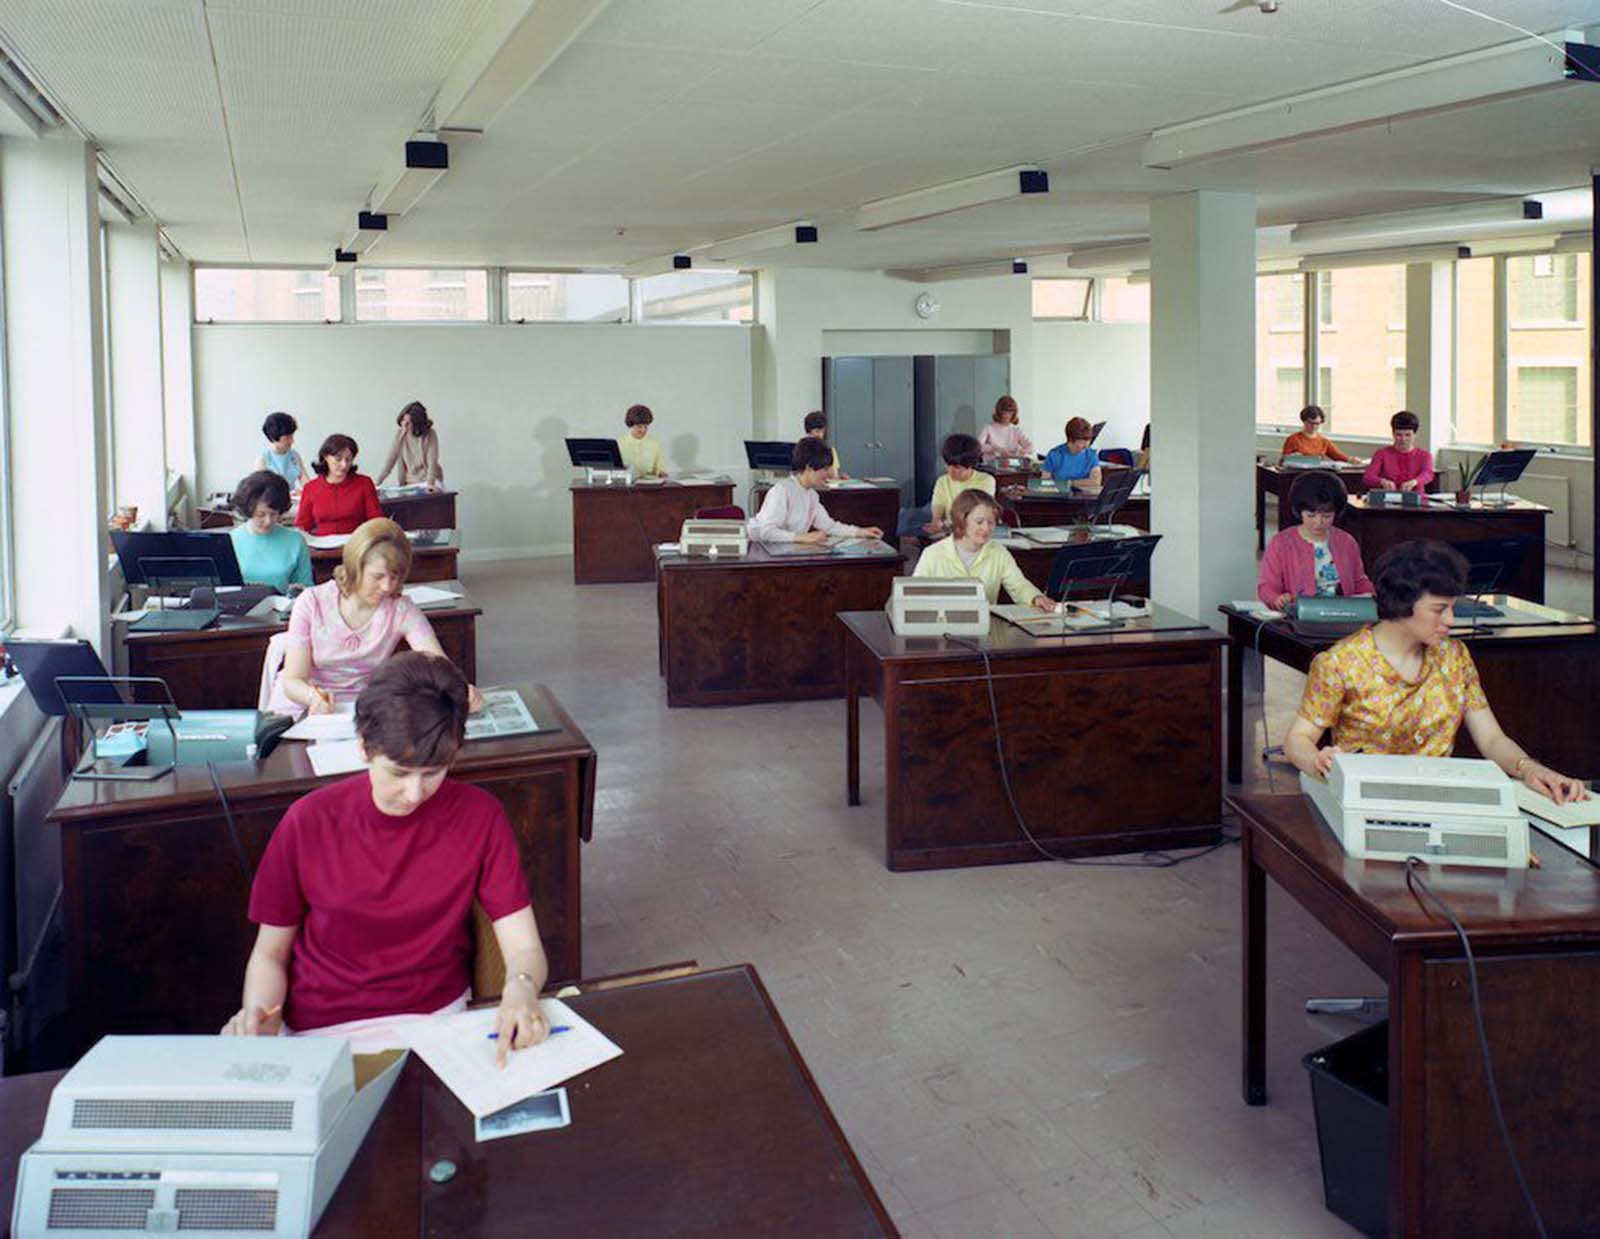 Administration office at Huntsman House, headquarters of Tetley's brewers in Leeds, West Yorkshire. Women workers use Sumlock machines, forerunners of the calculator. They wear clothes in a palette of bright colours. Of the 17 women in the picture, four wear pastel yellow, three wear pastel pink, two wear pastel blue. The women have a wide variety of hair styles, most strongly volumized with hairspray. 1968.